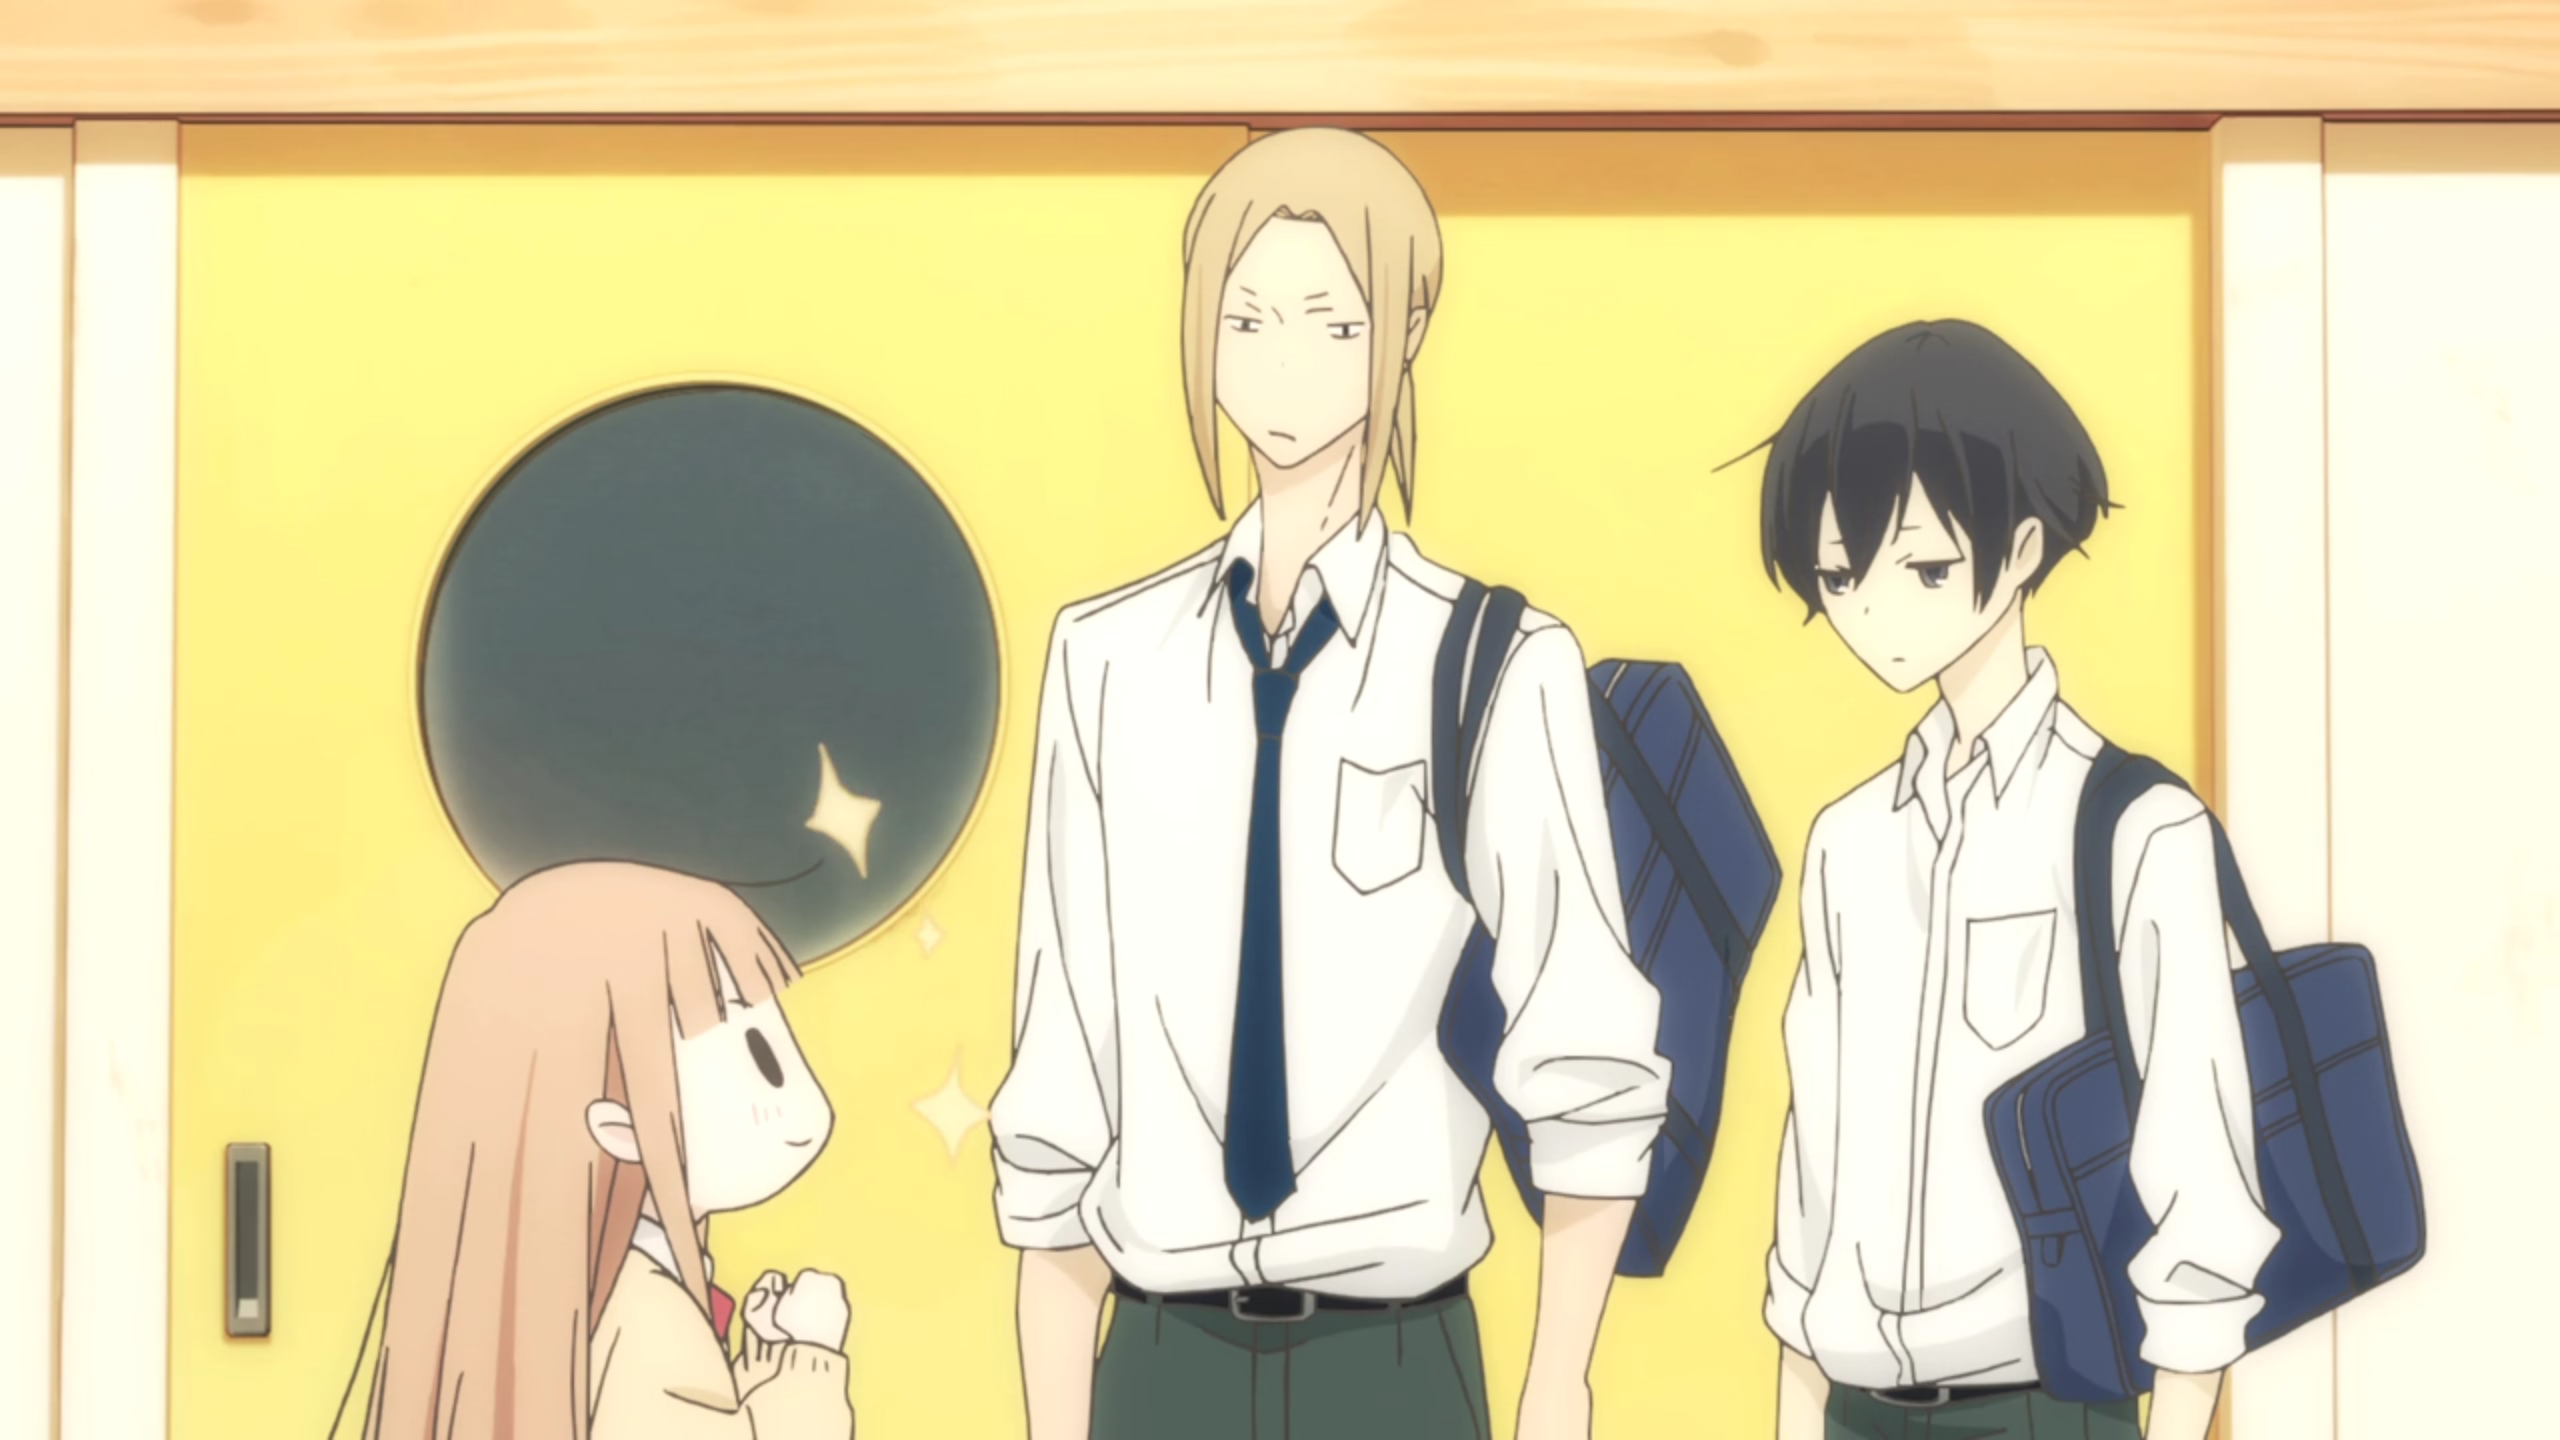 Short girl Miyano looks up at Ota and Tanaka with a determined smile on her face. Ota is tall with longer, sandy coloured hair, while Tanaka is average height with black hair and sleepy eyes.